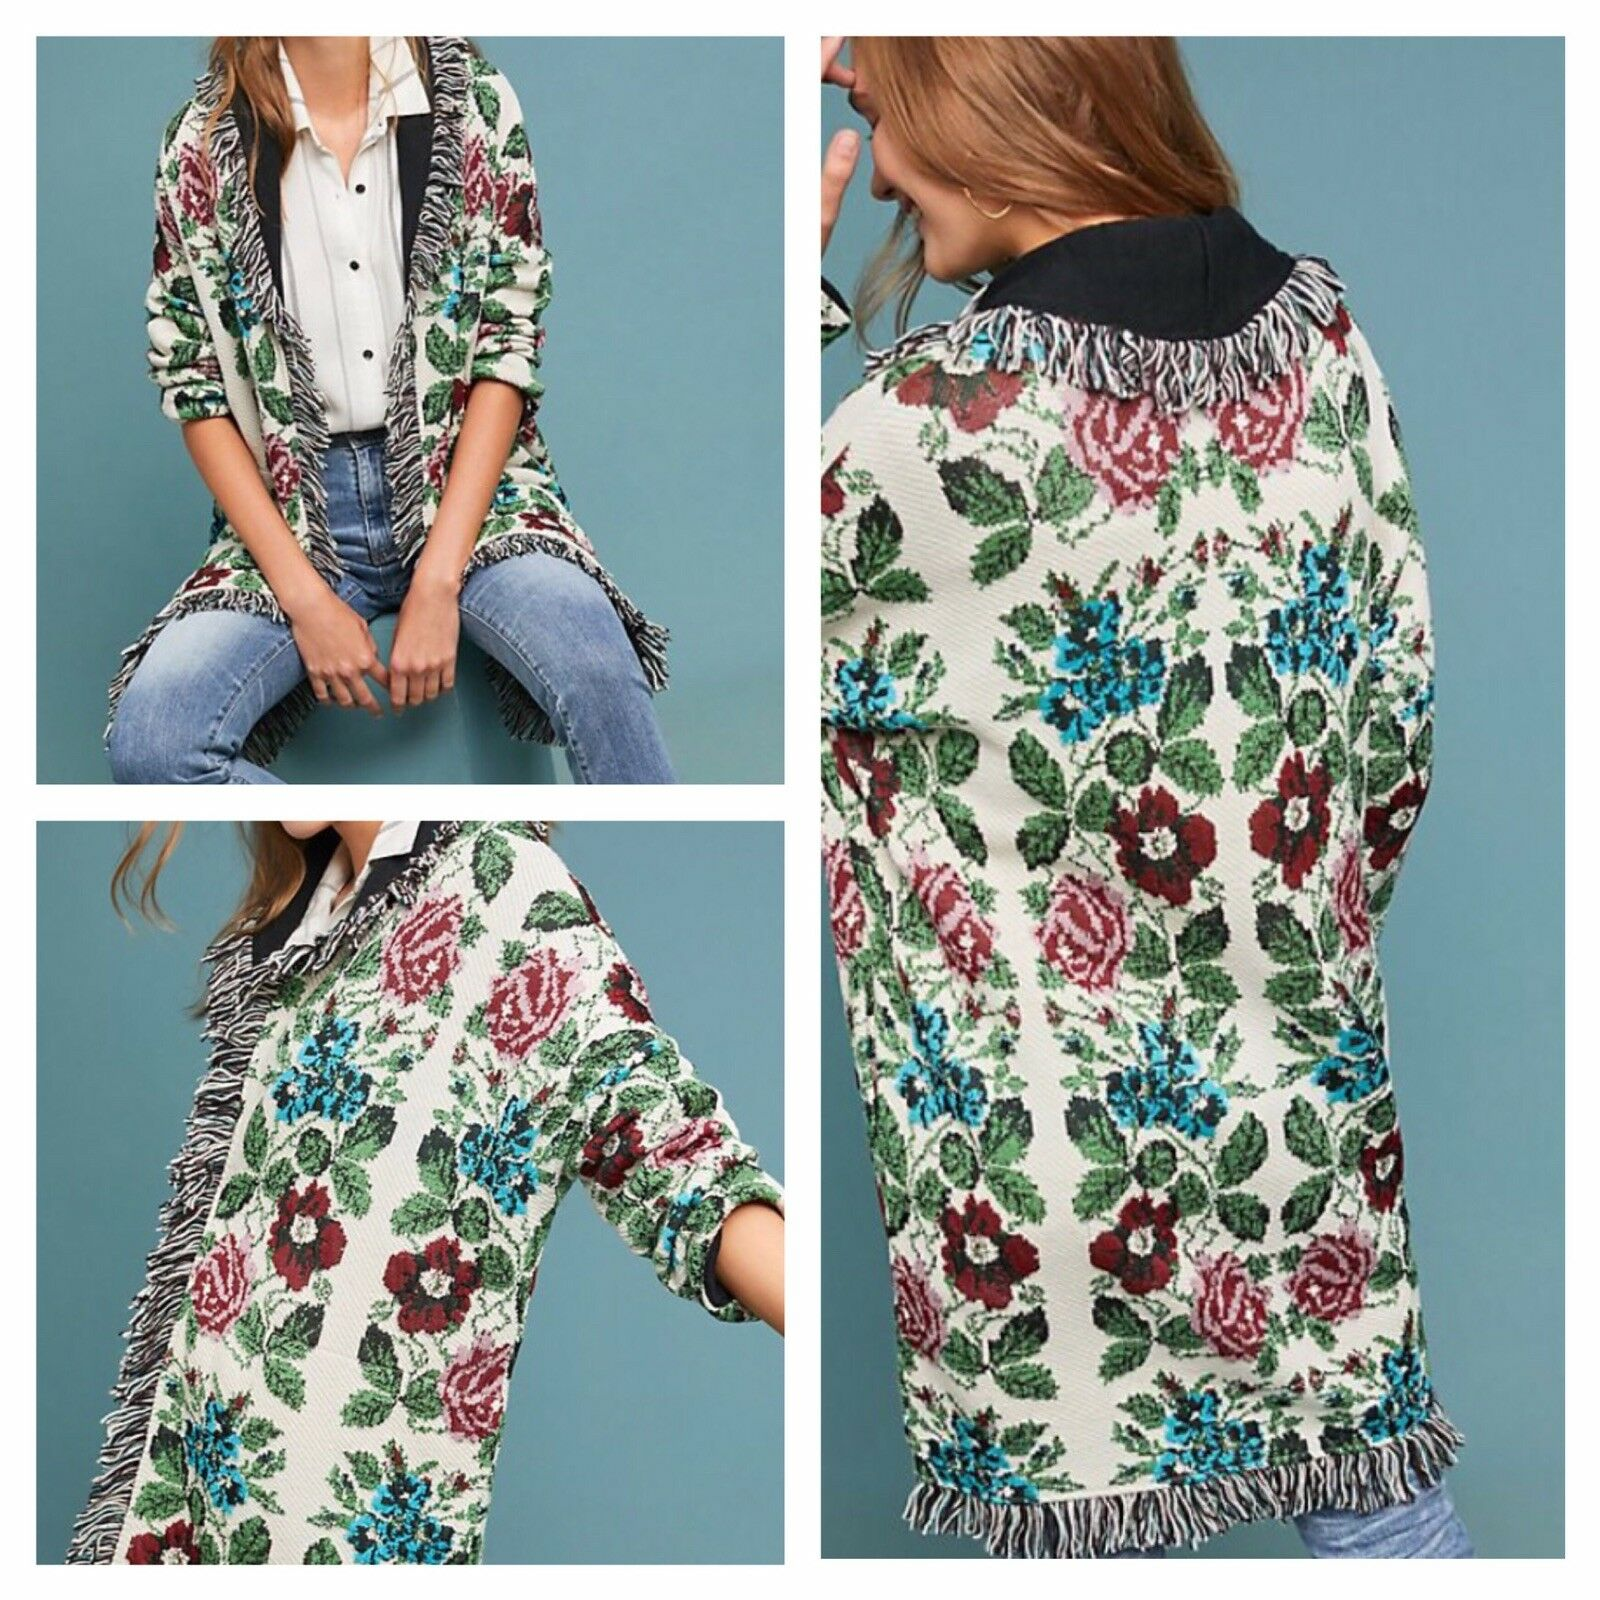 NWT Anthropologie Floral Intarsia Cardigan Sweater By Aldomartins XL NEW